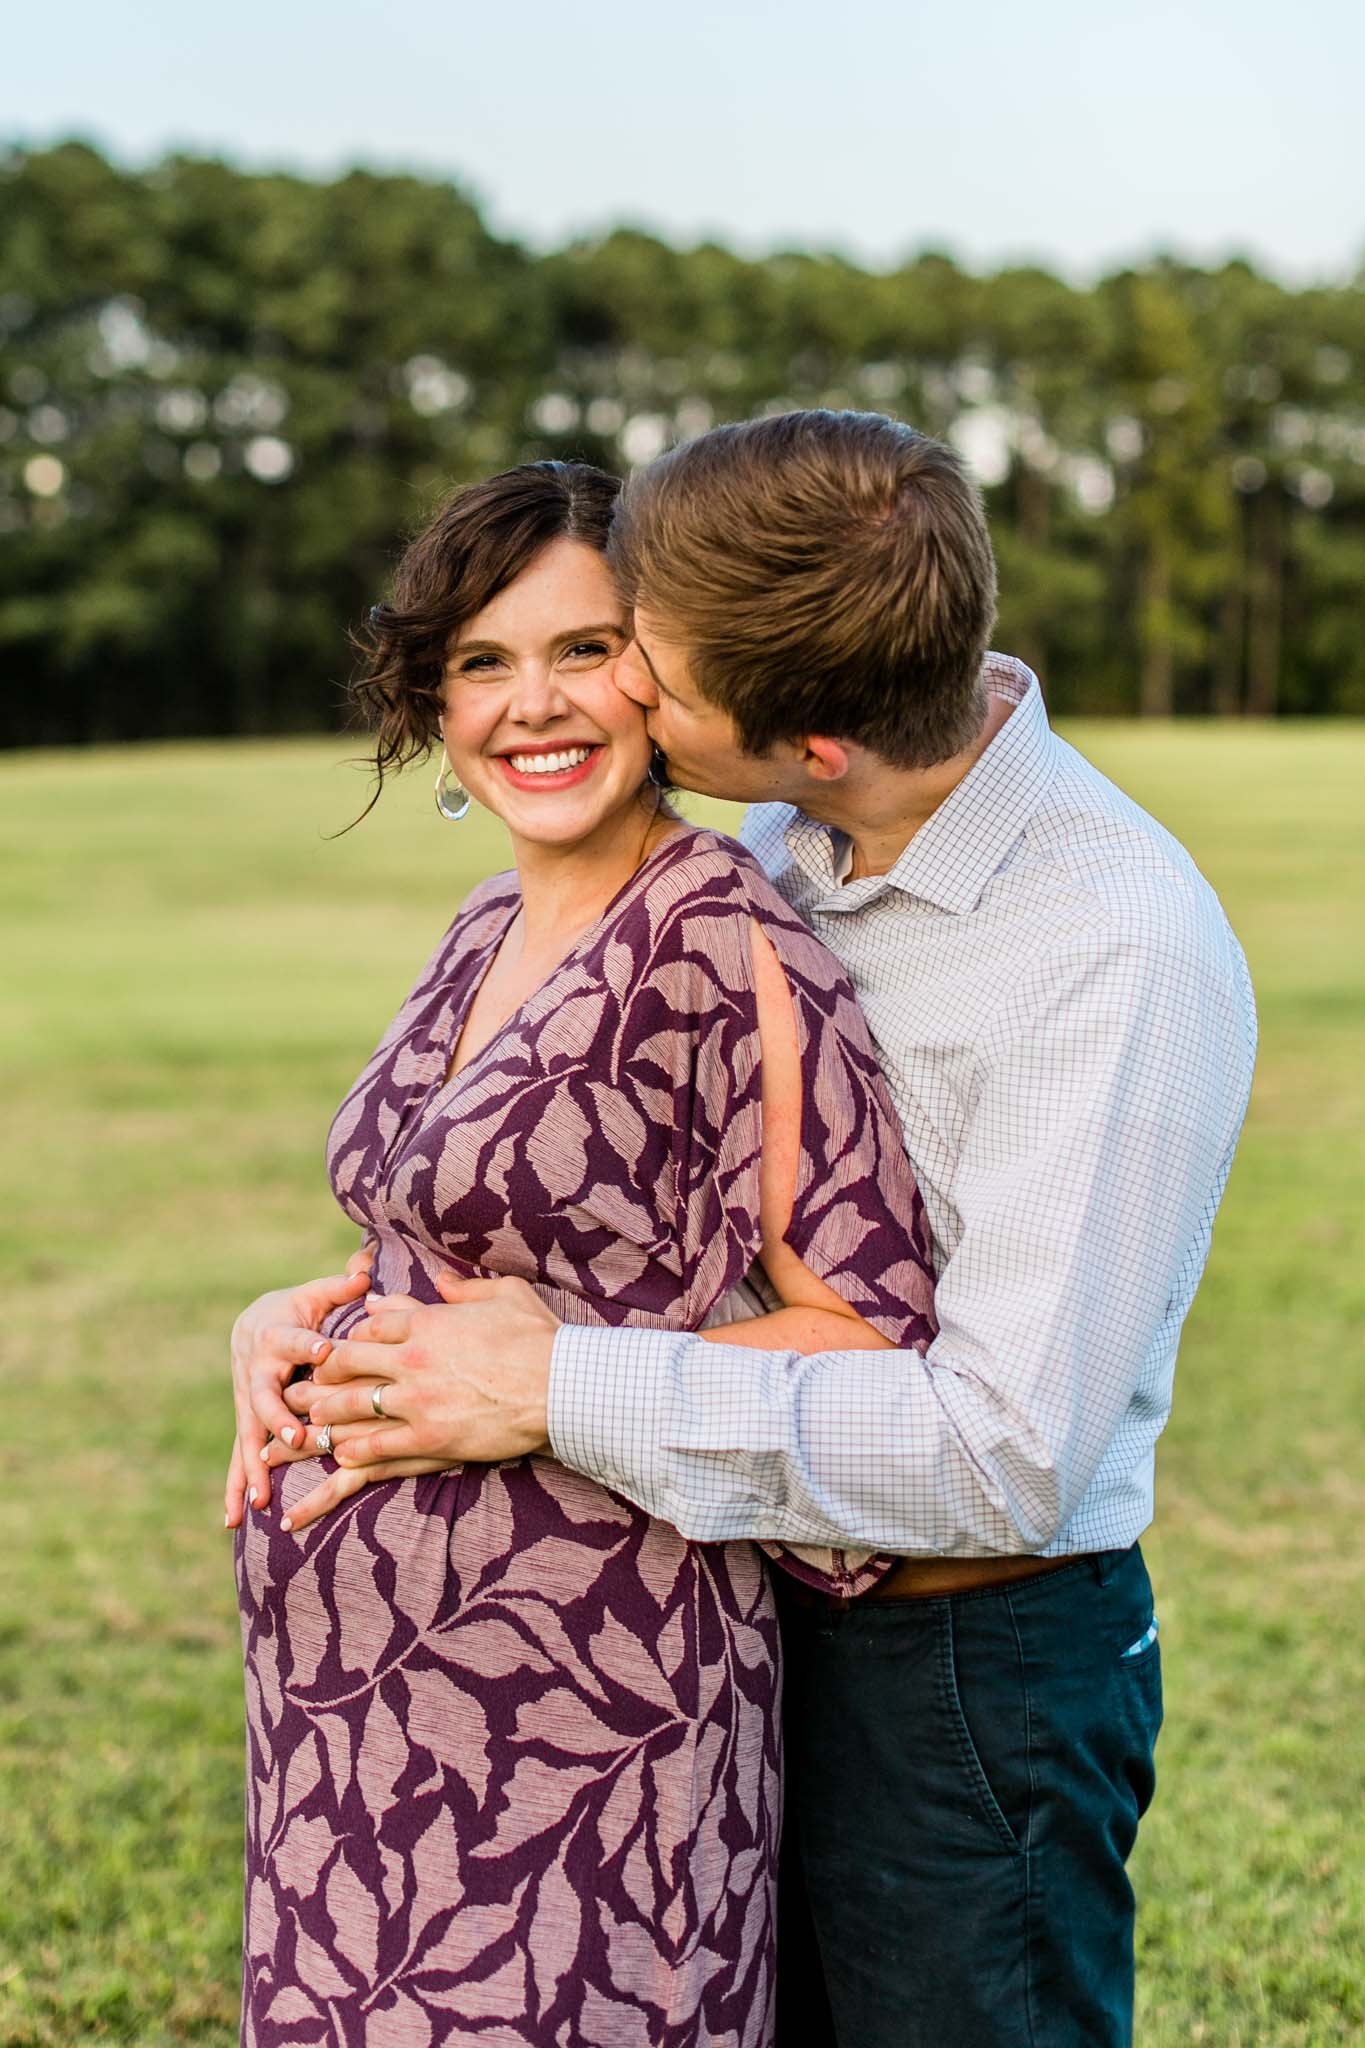 Raleigh Maternity Photographer at Dix Park   By G. Lin Photography   Husband kissing and hugging wife